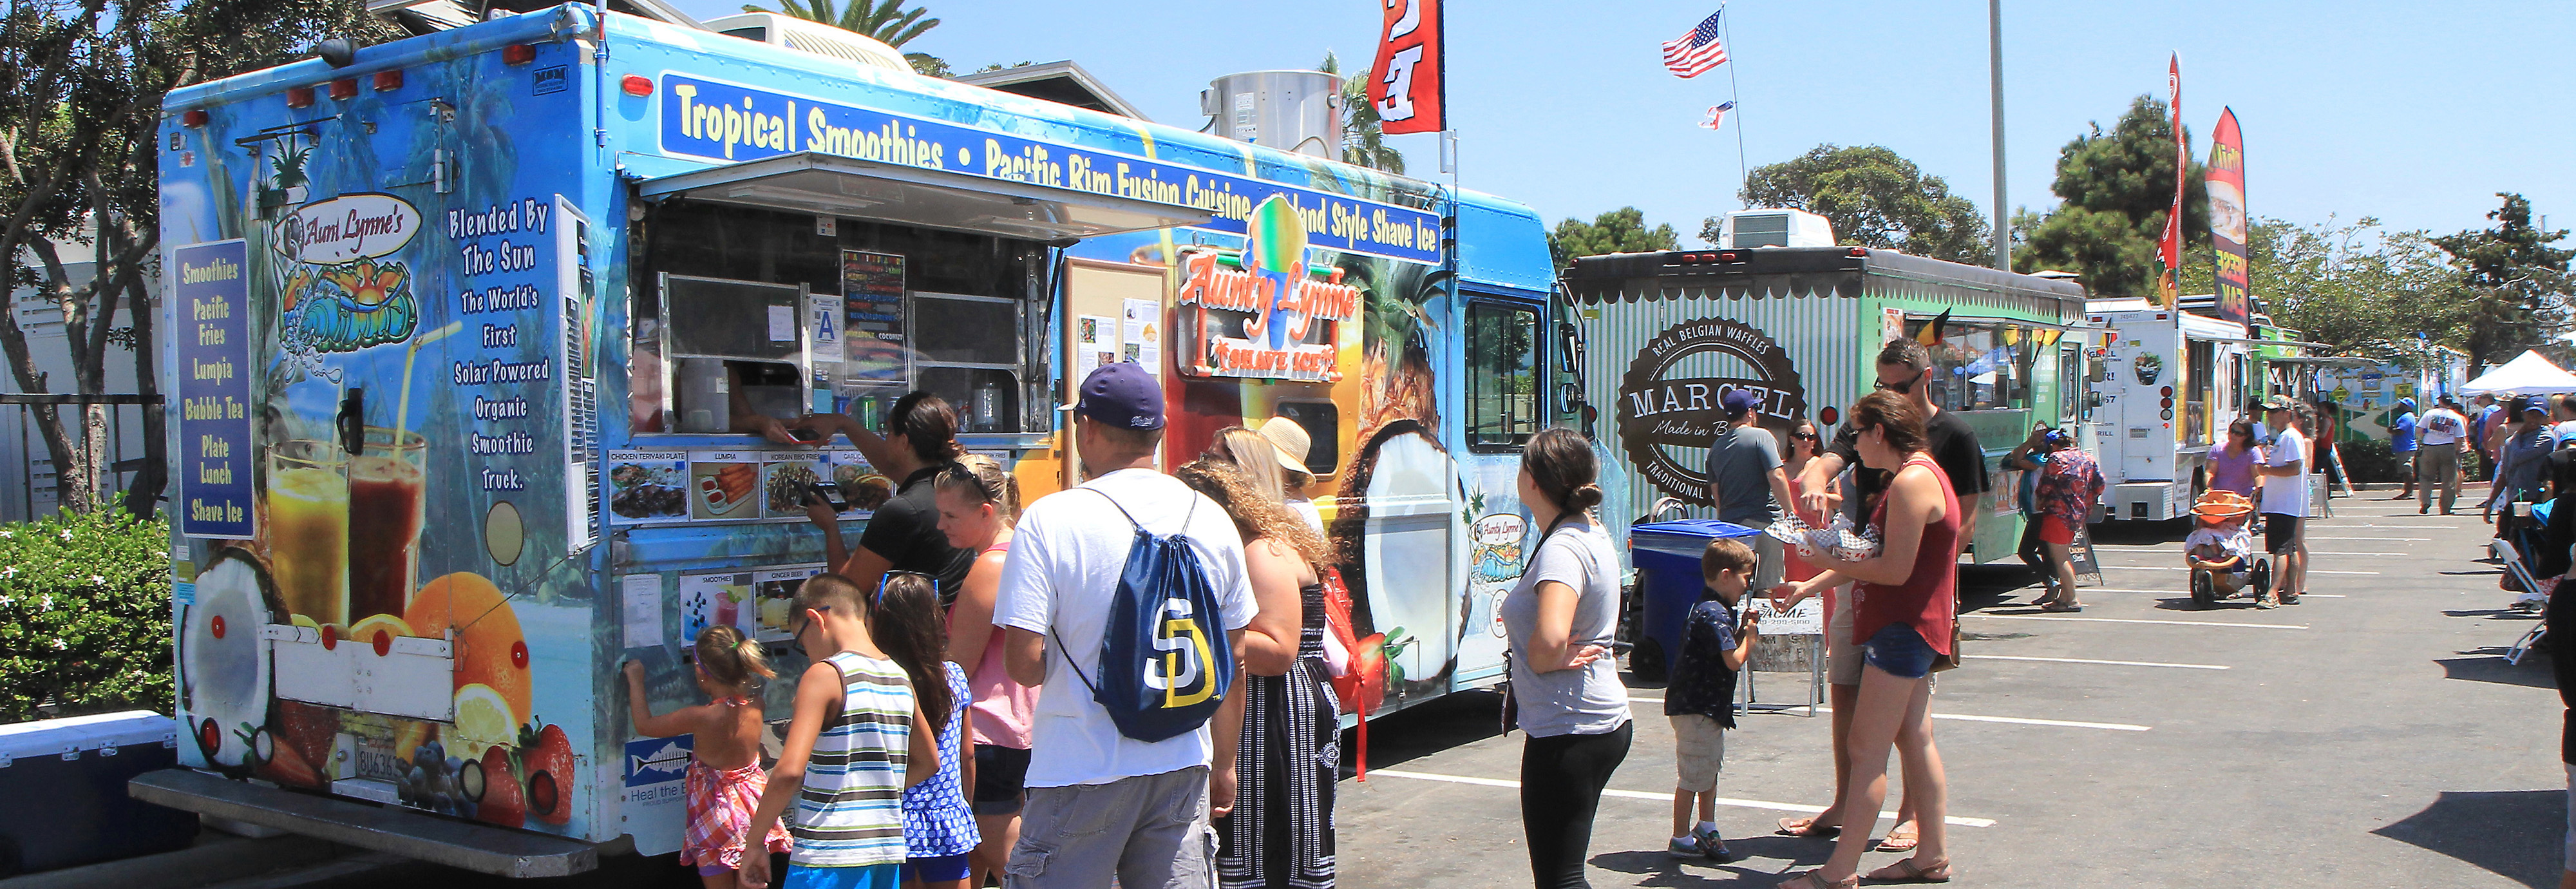 foodtruckalley chula vista harborfest san diego summer events